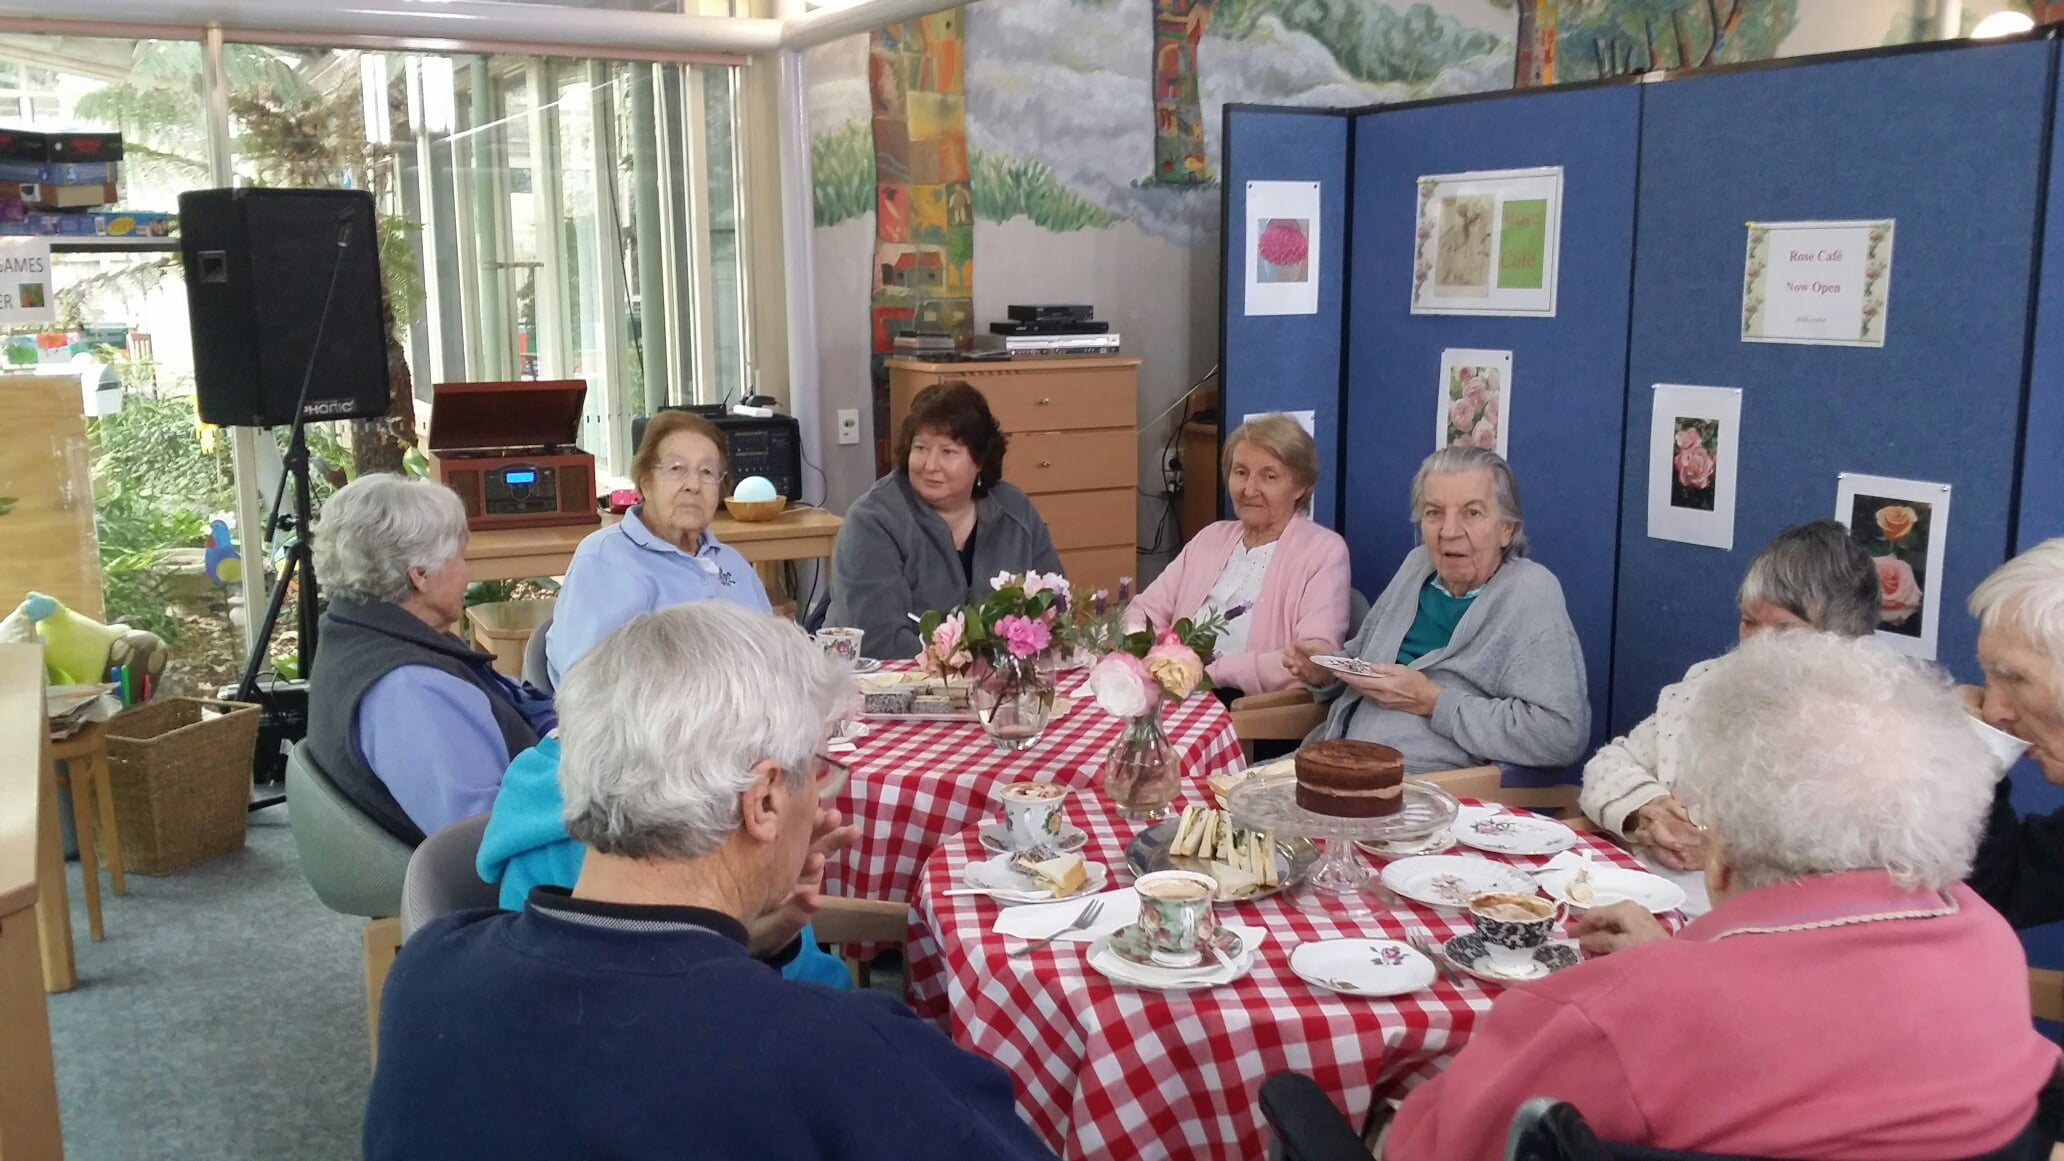 Weekly Pop Up Cafe At Amaroo Gardens Helps Residents